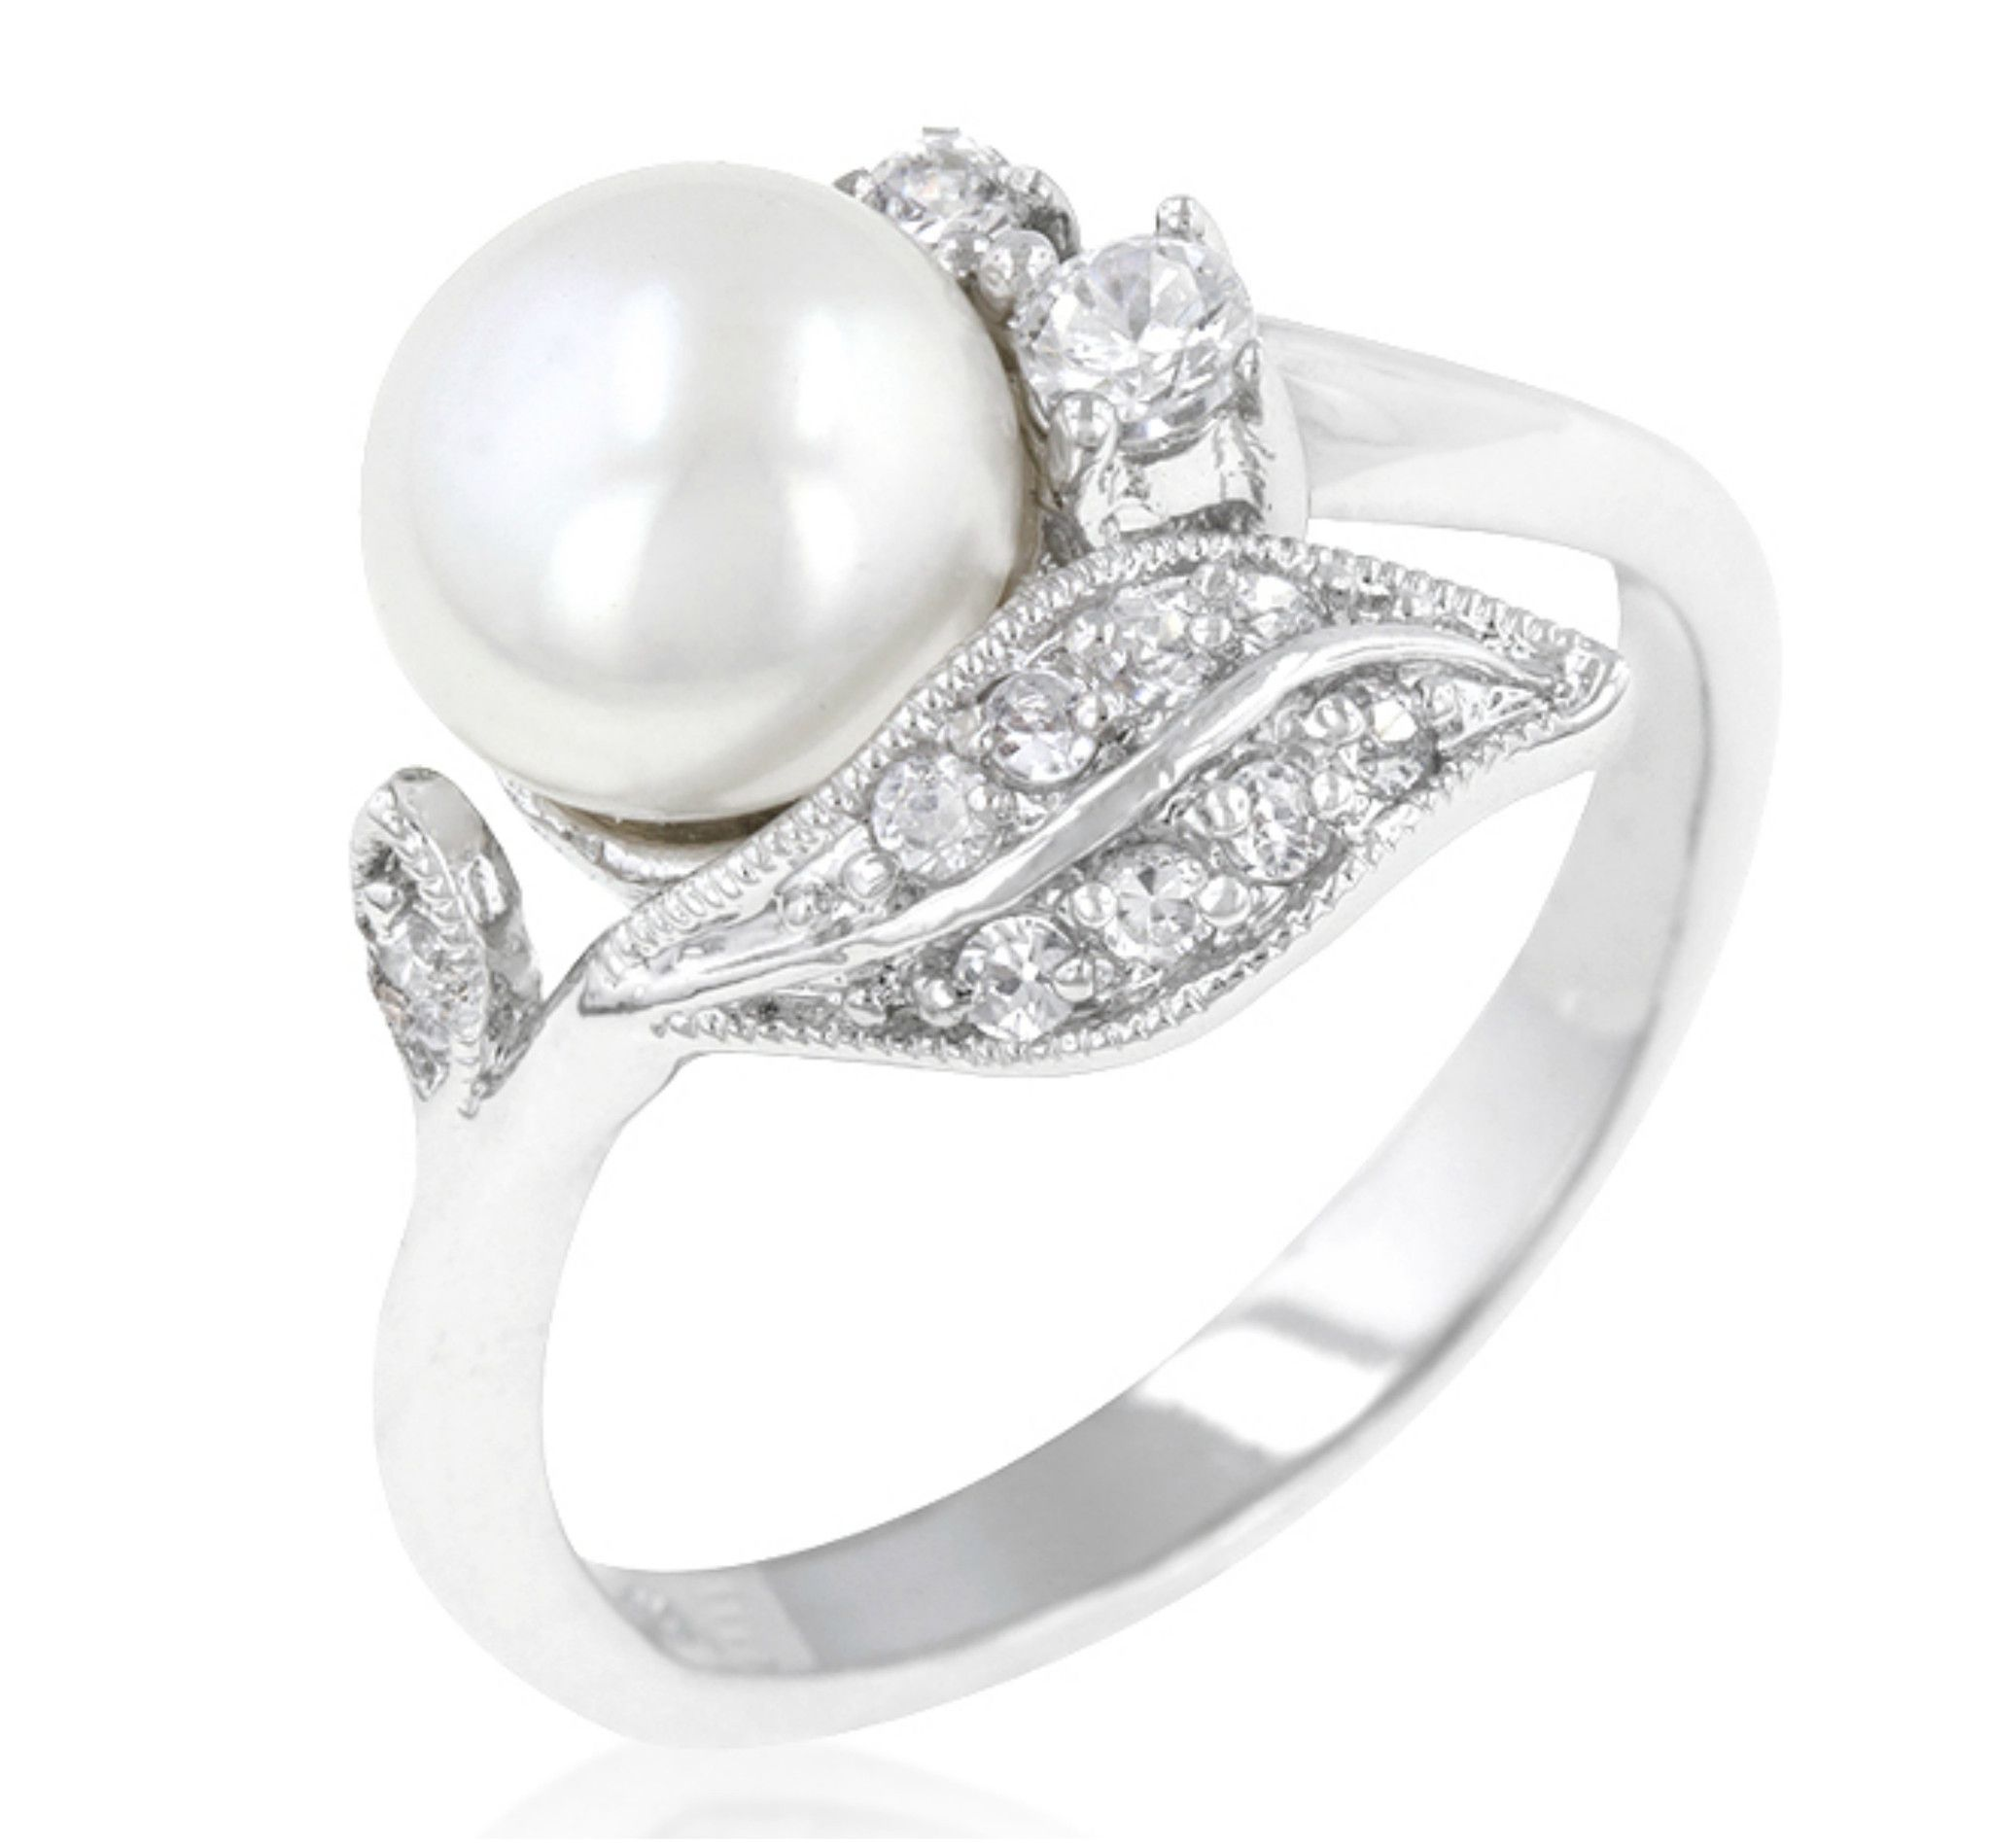 ring white rings lyst beauty wedding jewelry pearl yellow wrap sea gallery diamond product of gold freshwater mizuki normal